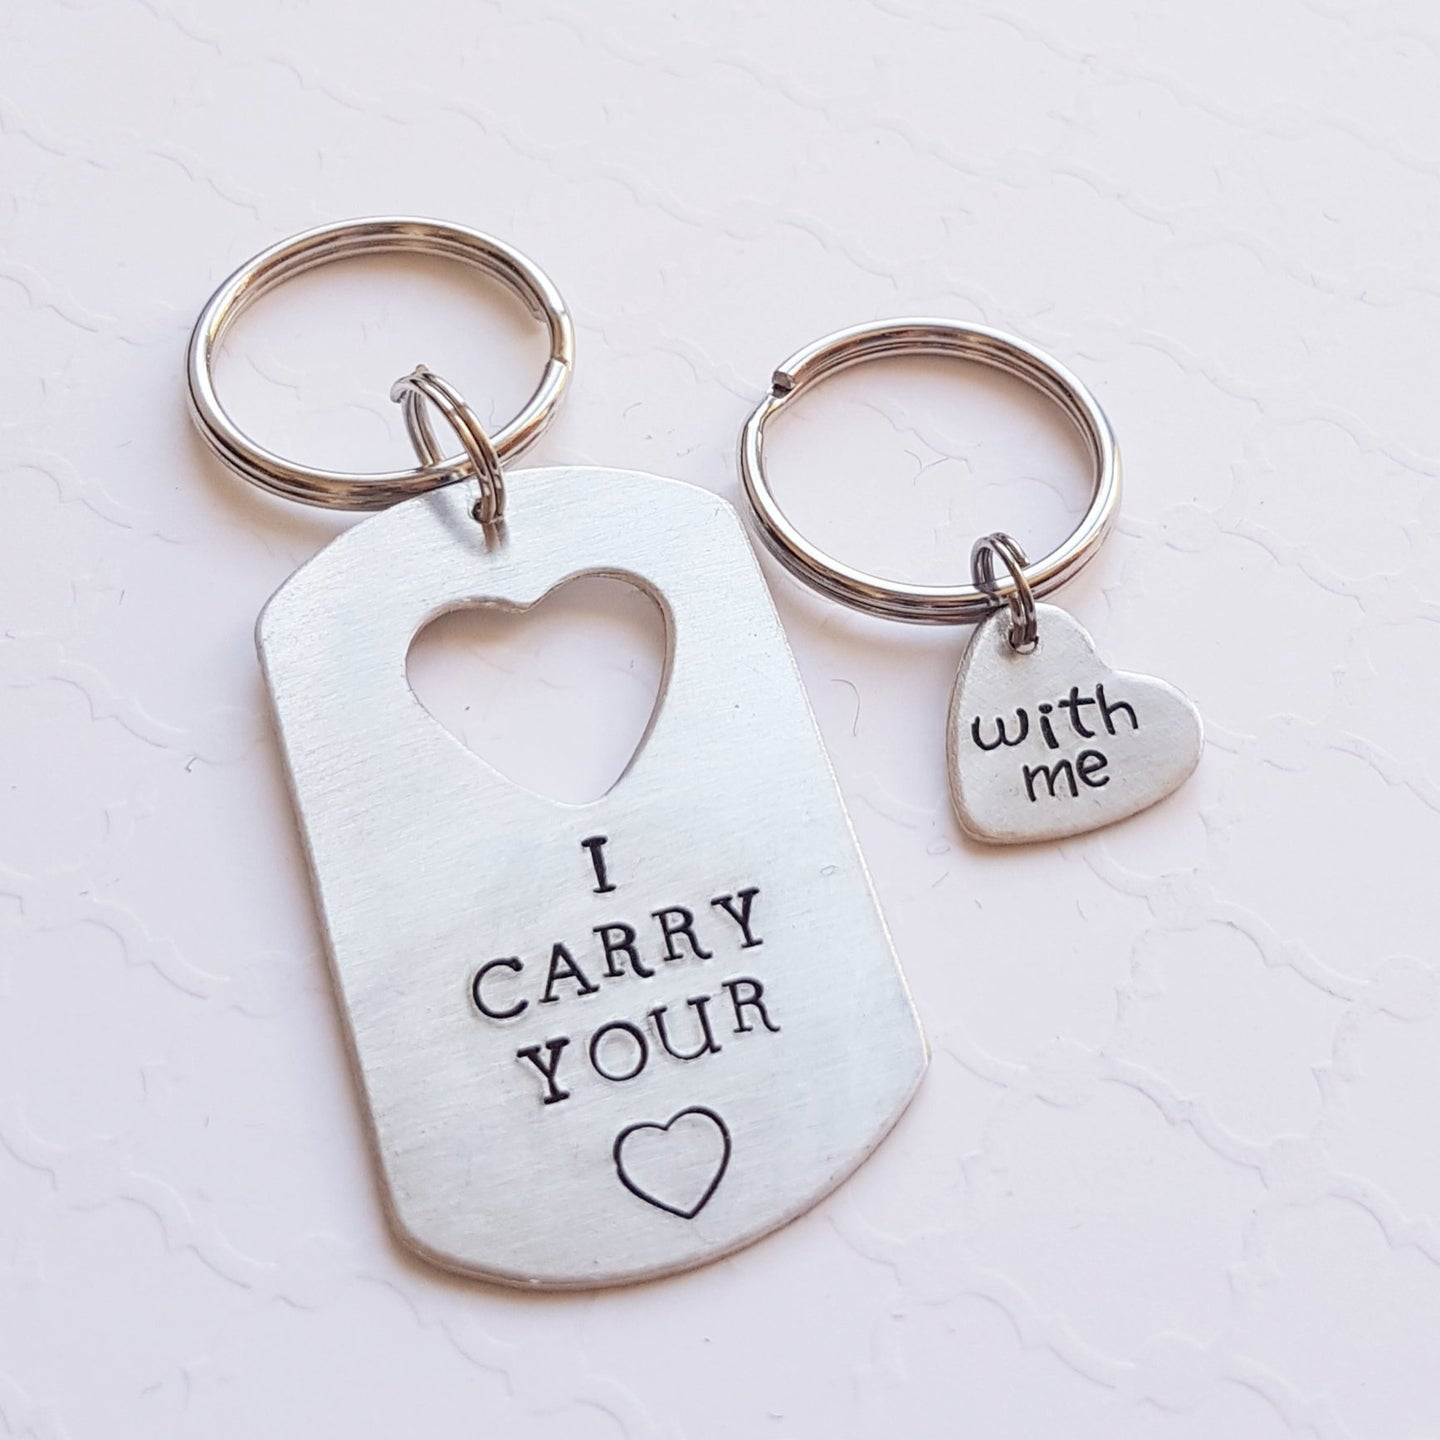 couples keychain set with dog tag and heart cut-out